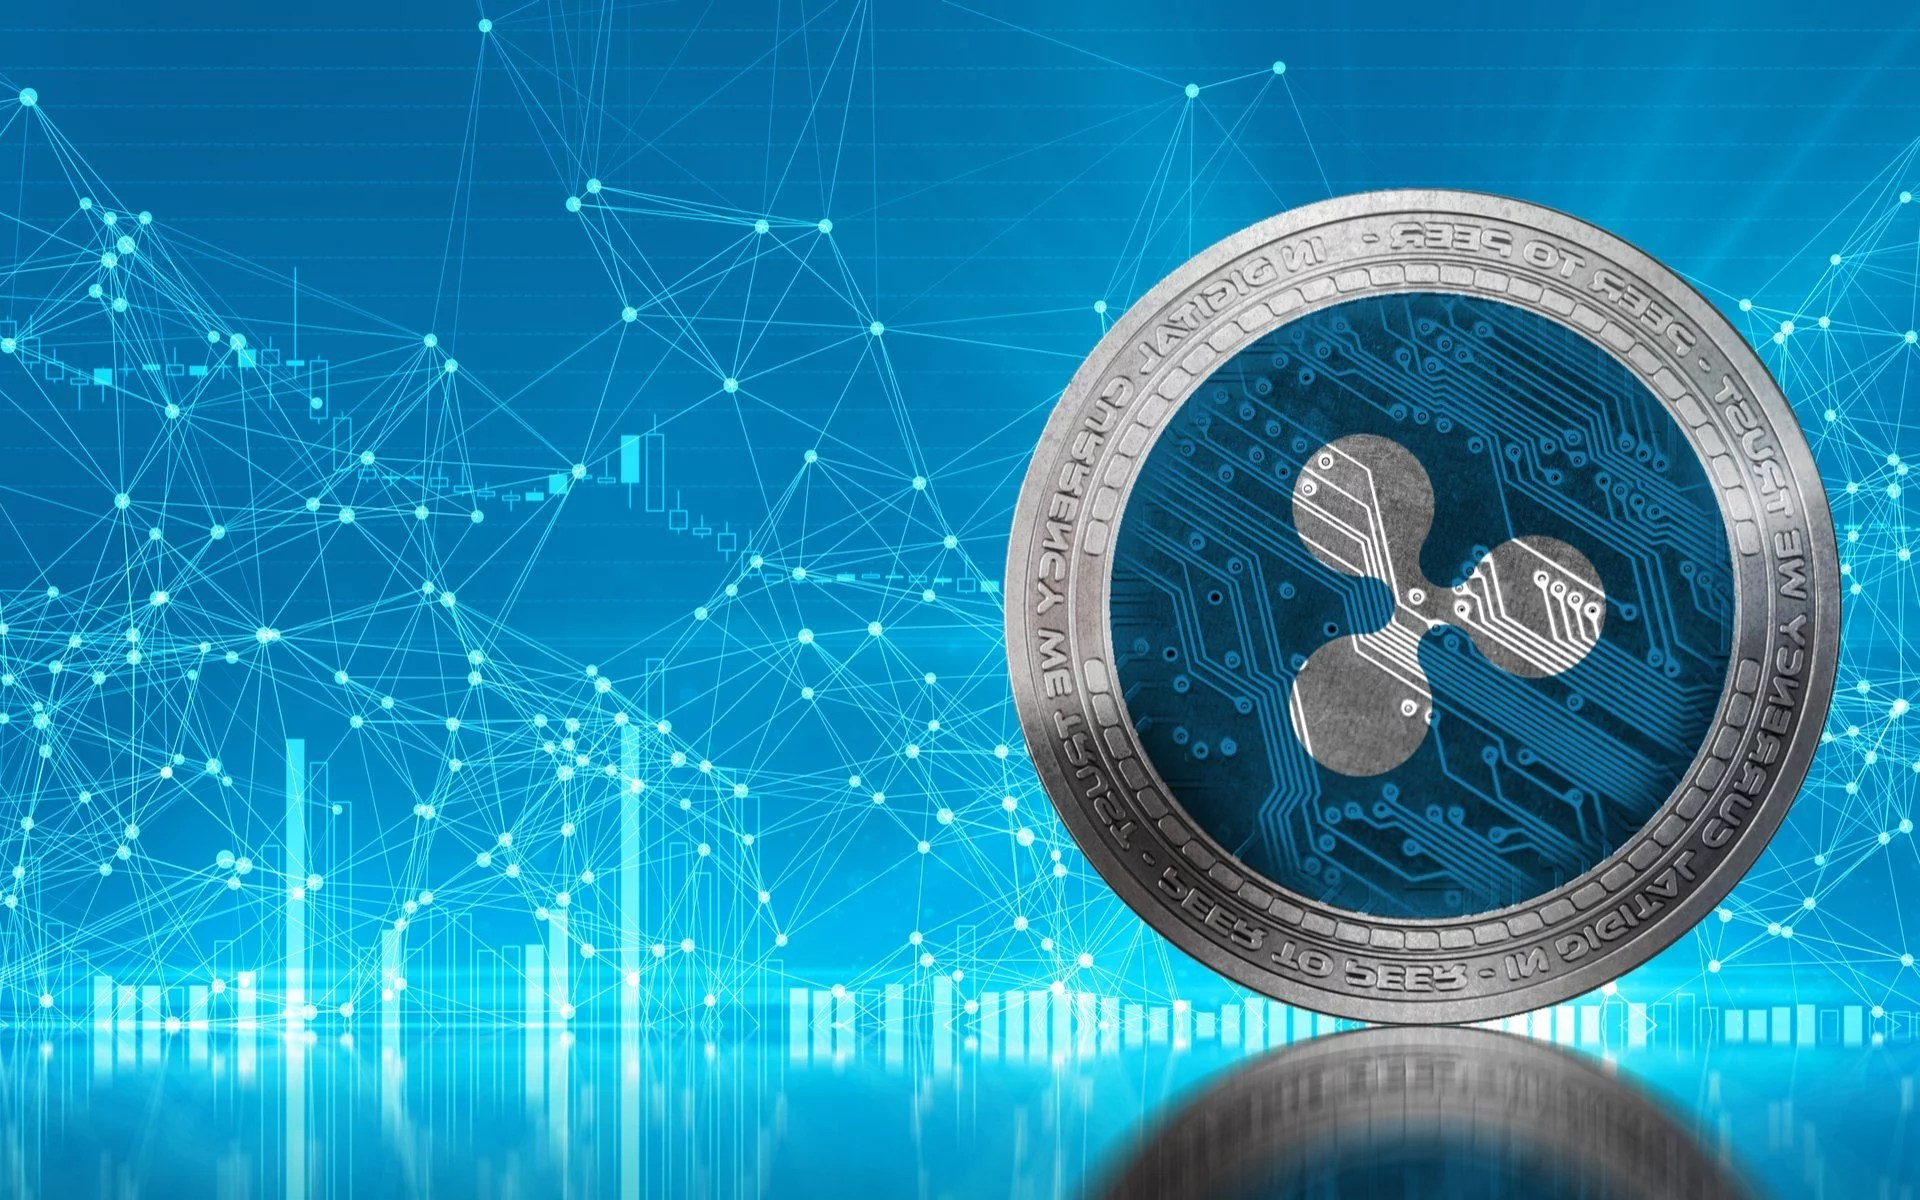 Ripple superó los 200 clientes inscritos en su red de pagos RippleNet